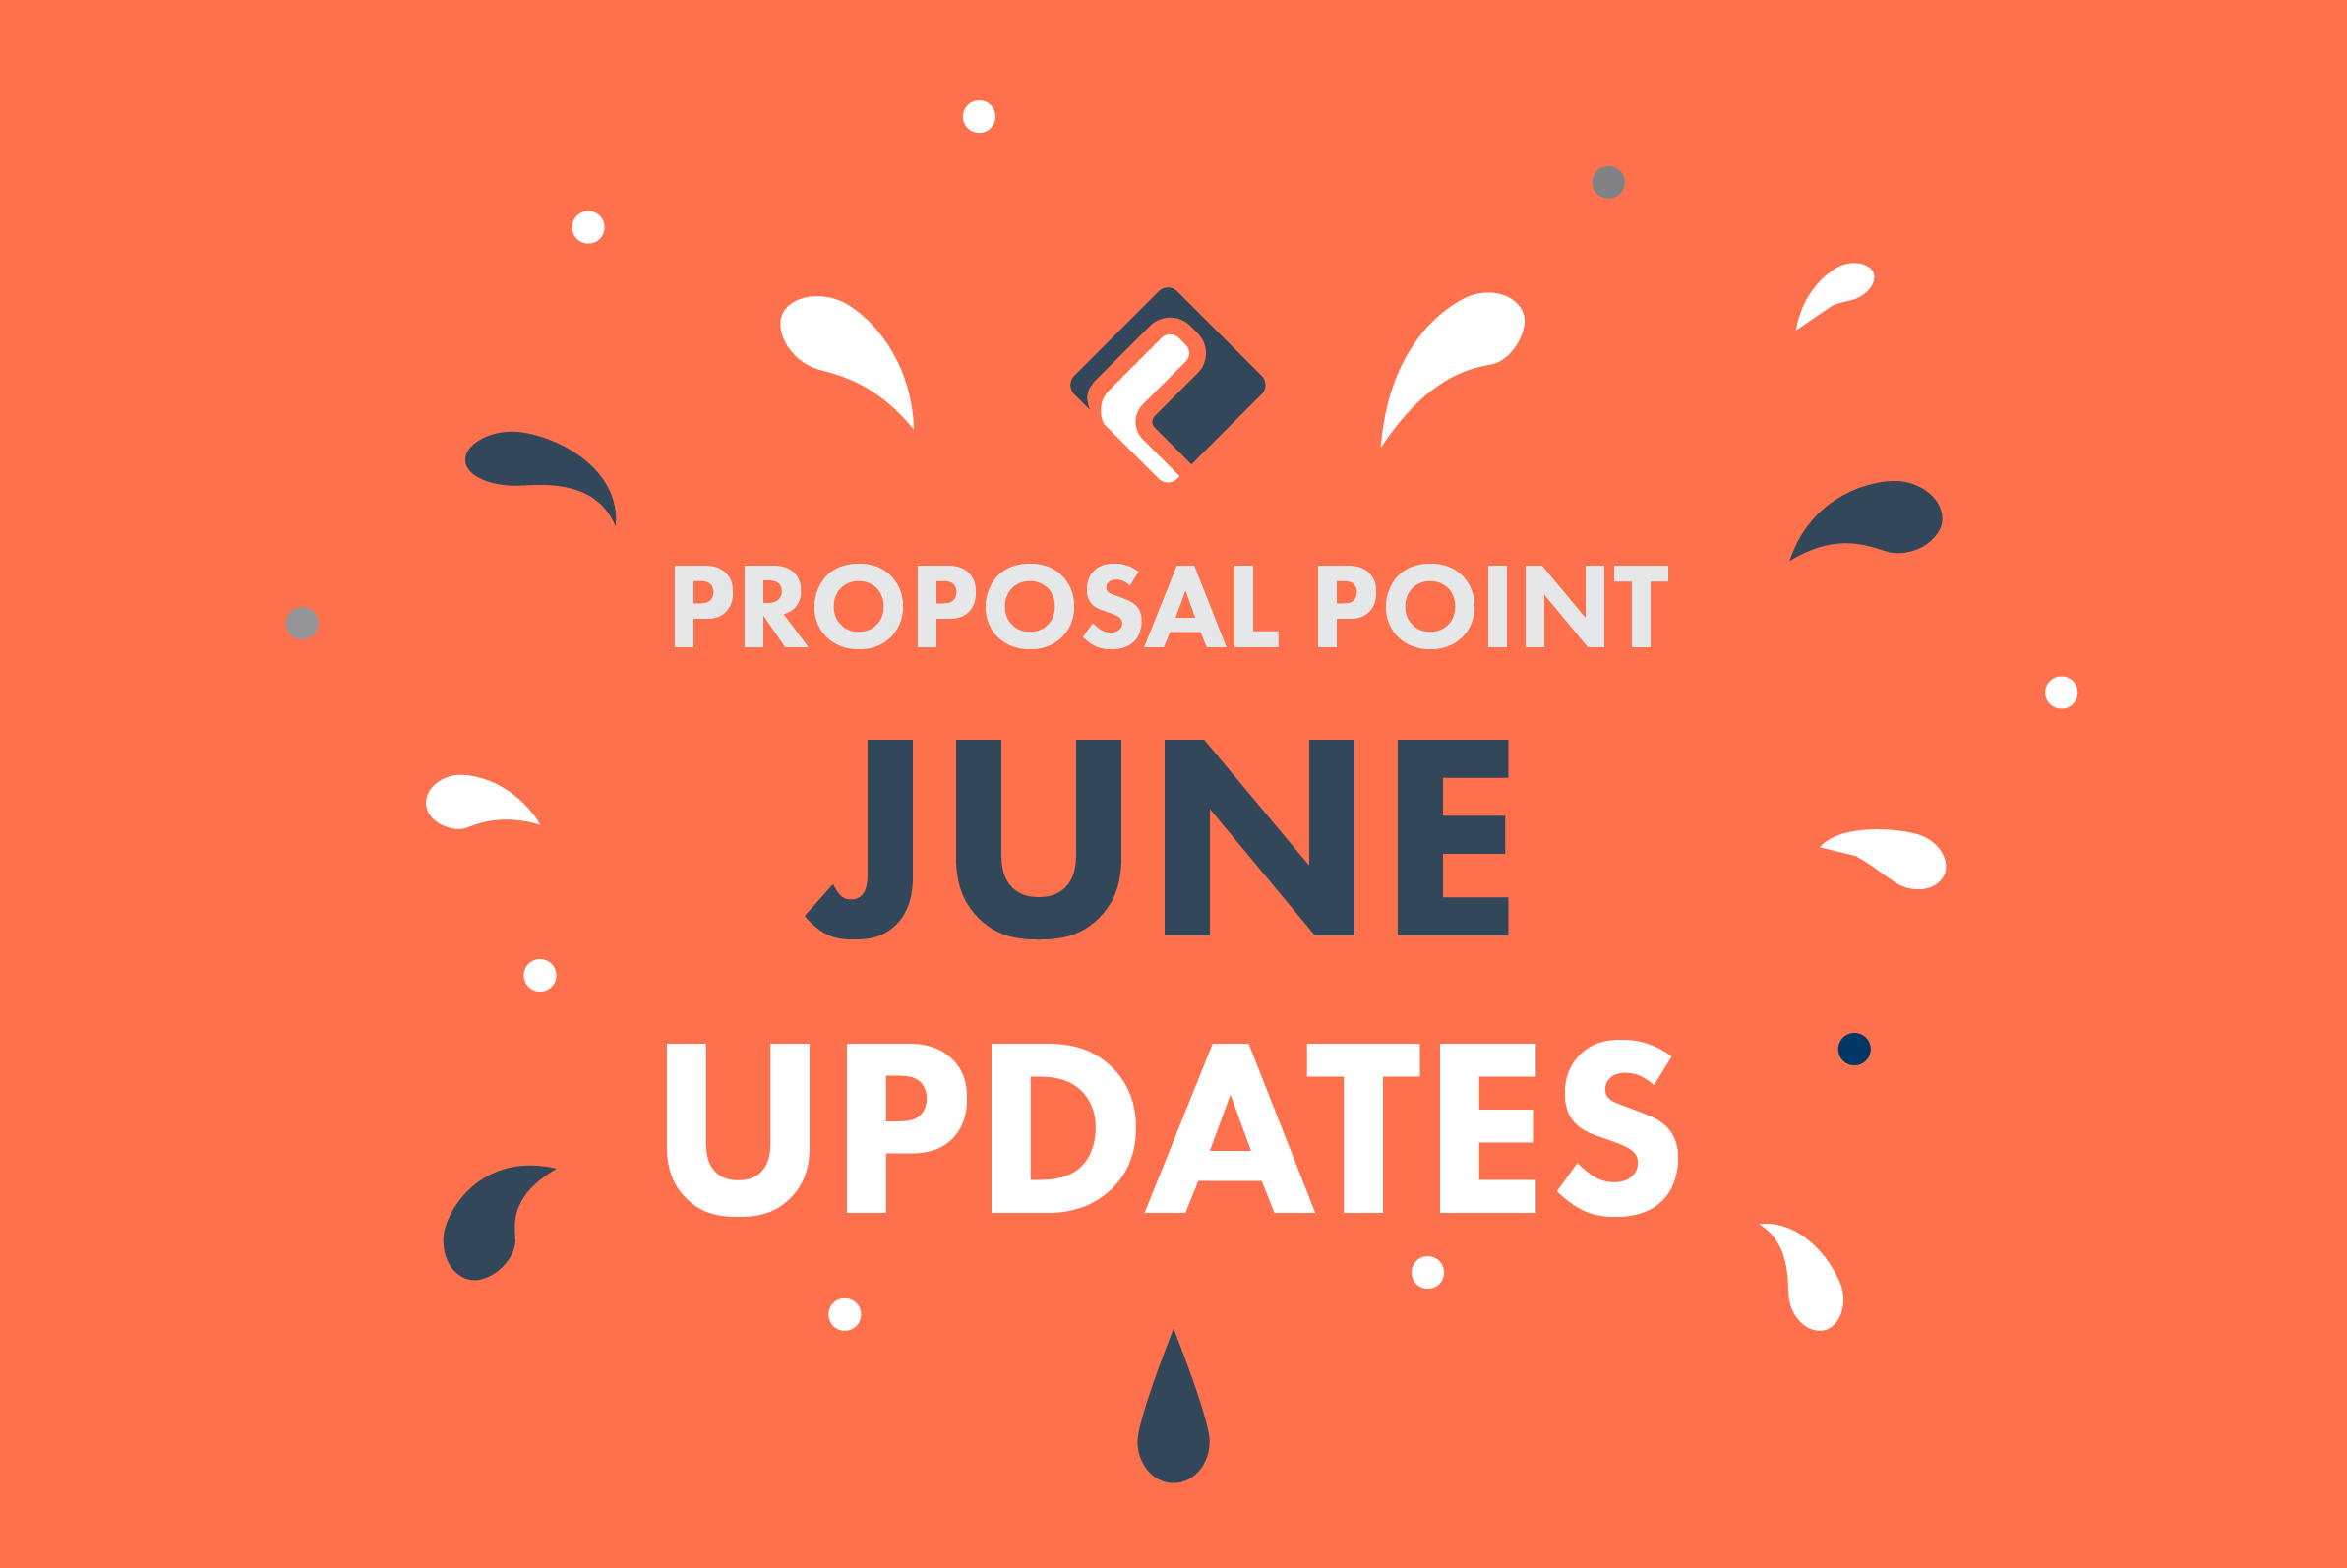 New ProposalPoint Features Added in June